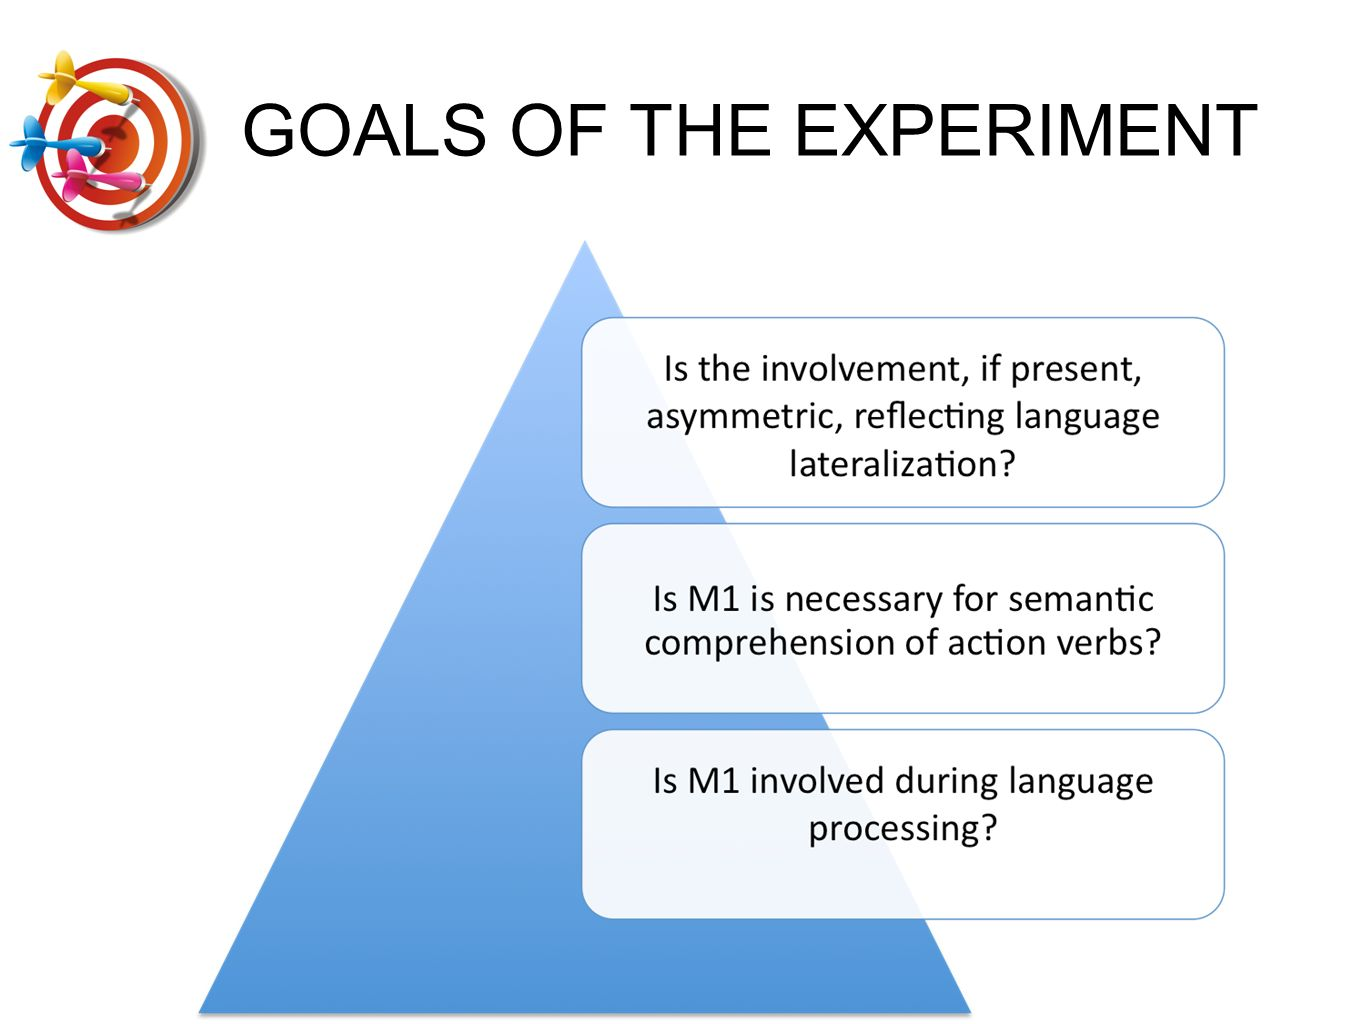 GOALS OF THE EXPERIMENT